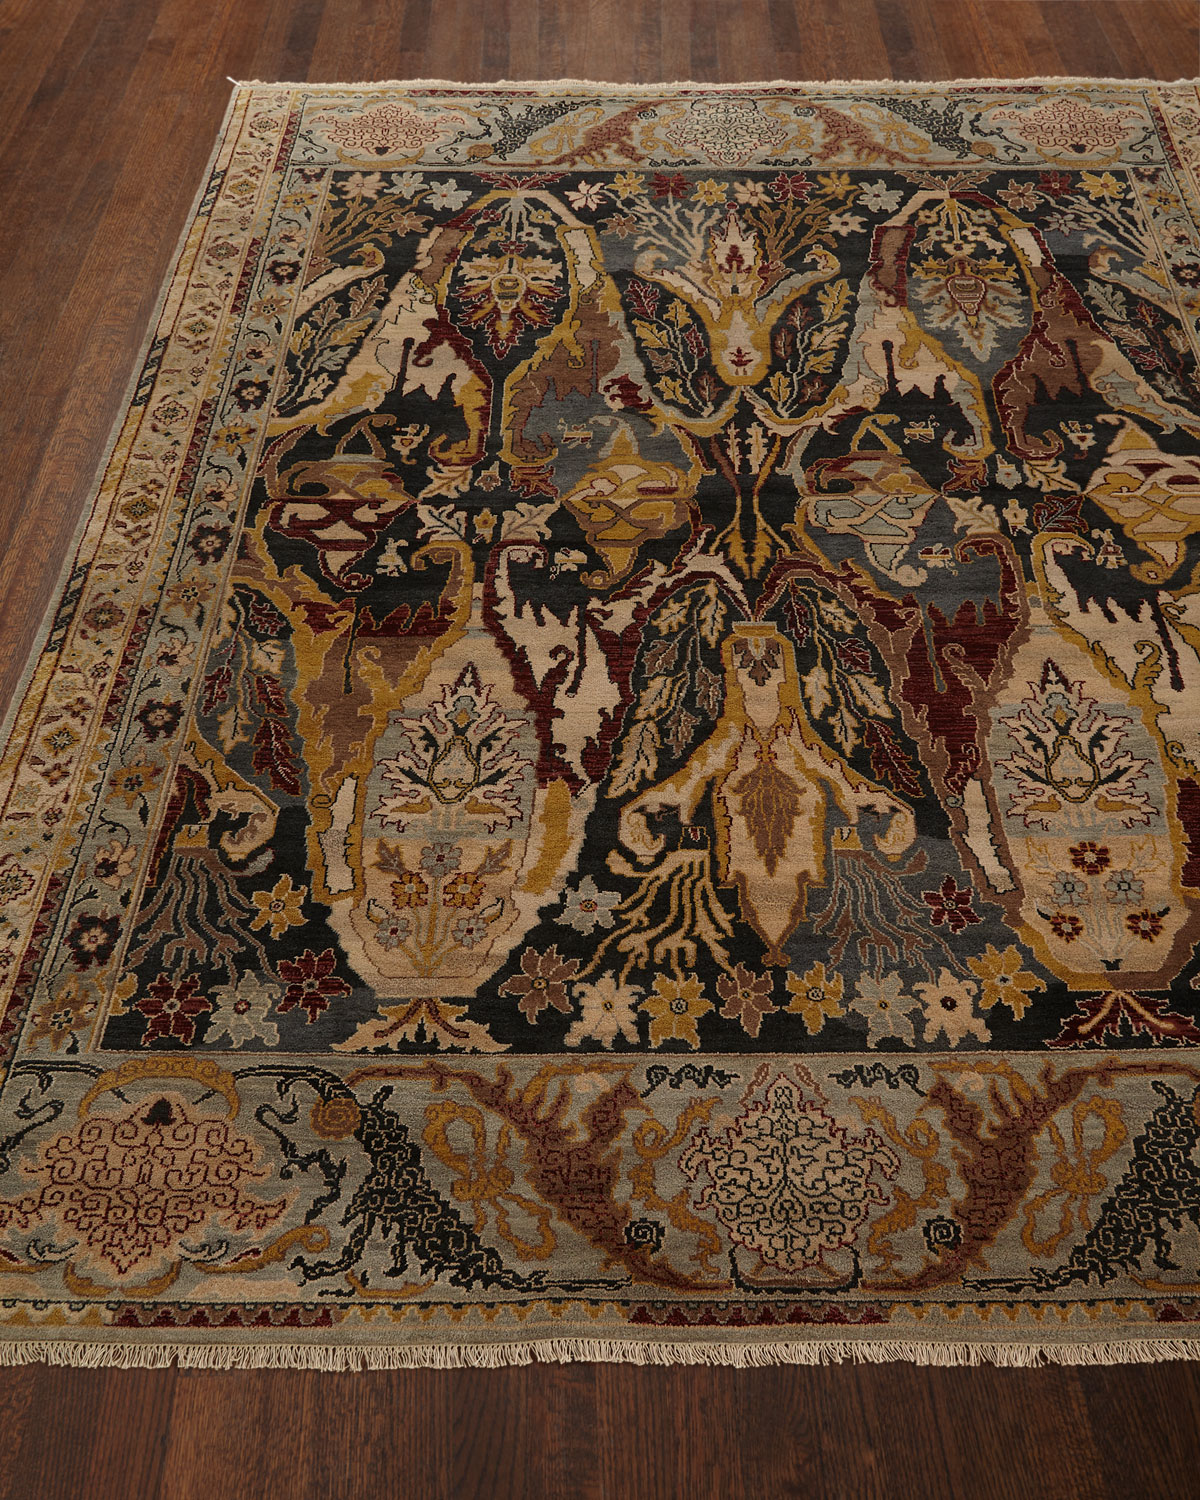 Exquisite Rugs Hamilton Hand Knotted Rug 10 X 14